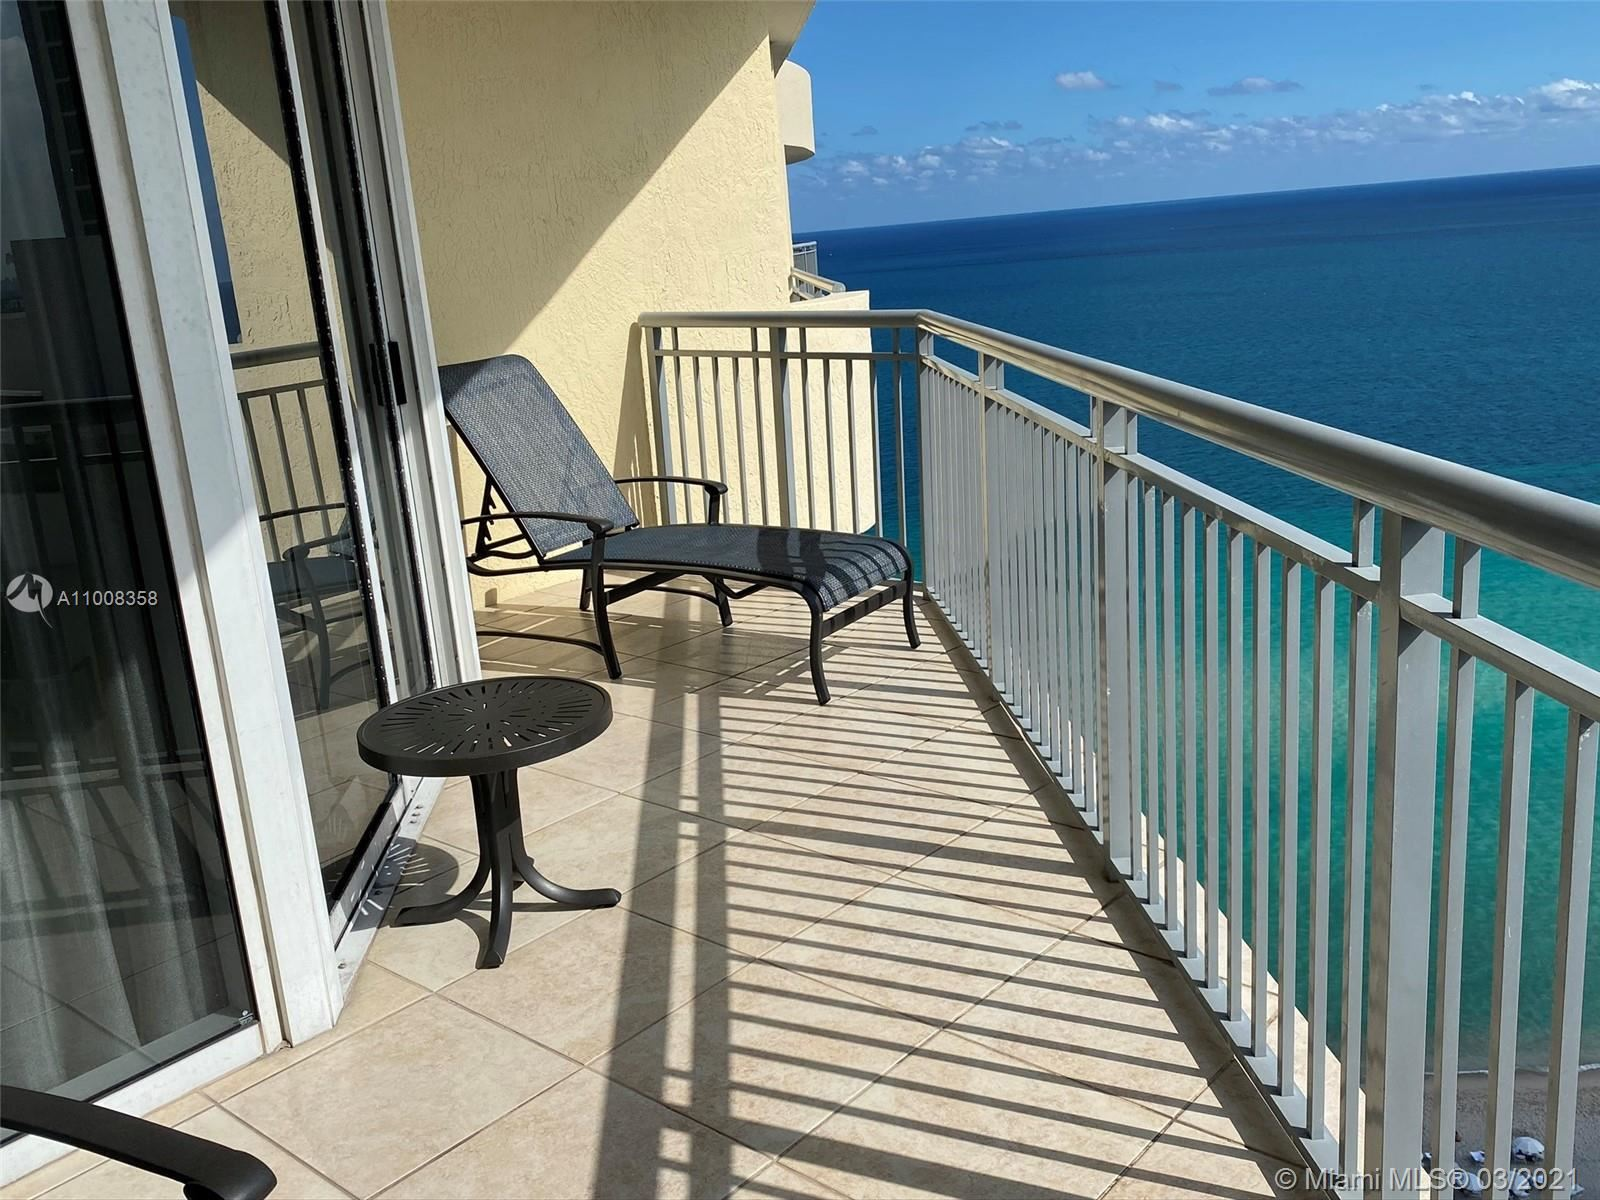 17375 Collins Ave #2705, Sunny Isles, FL 33160 - #: A11008358